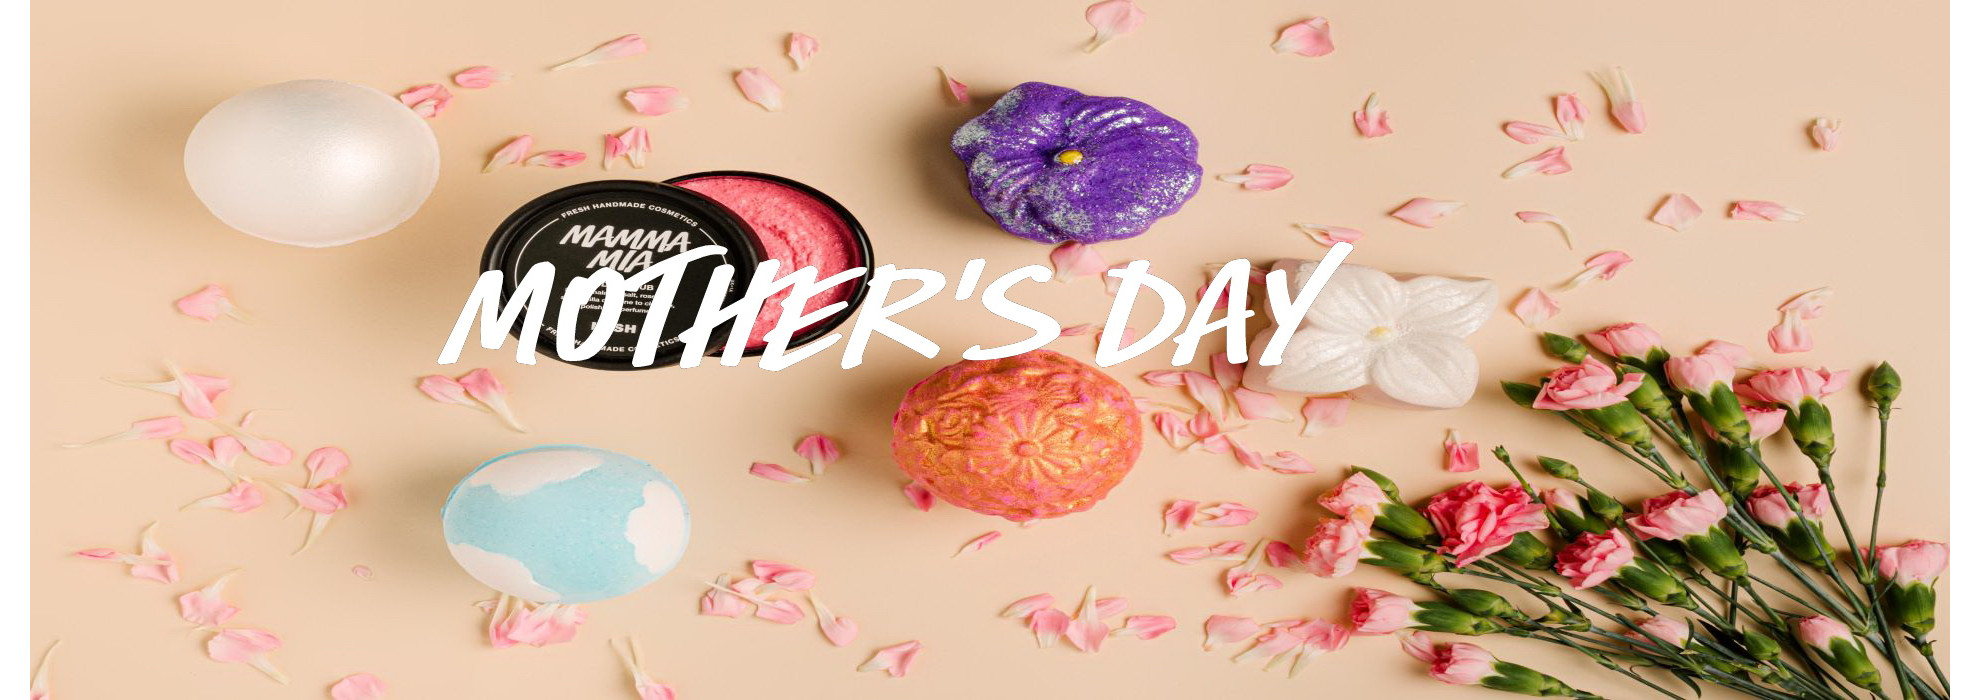 Category New Mother's Day